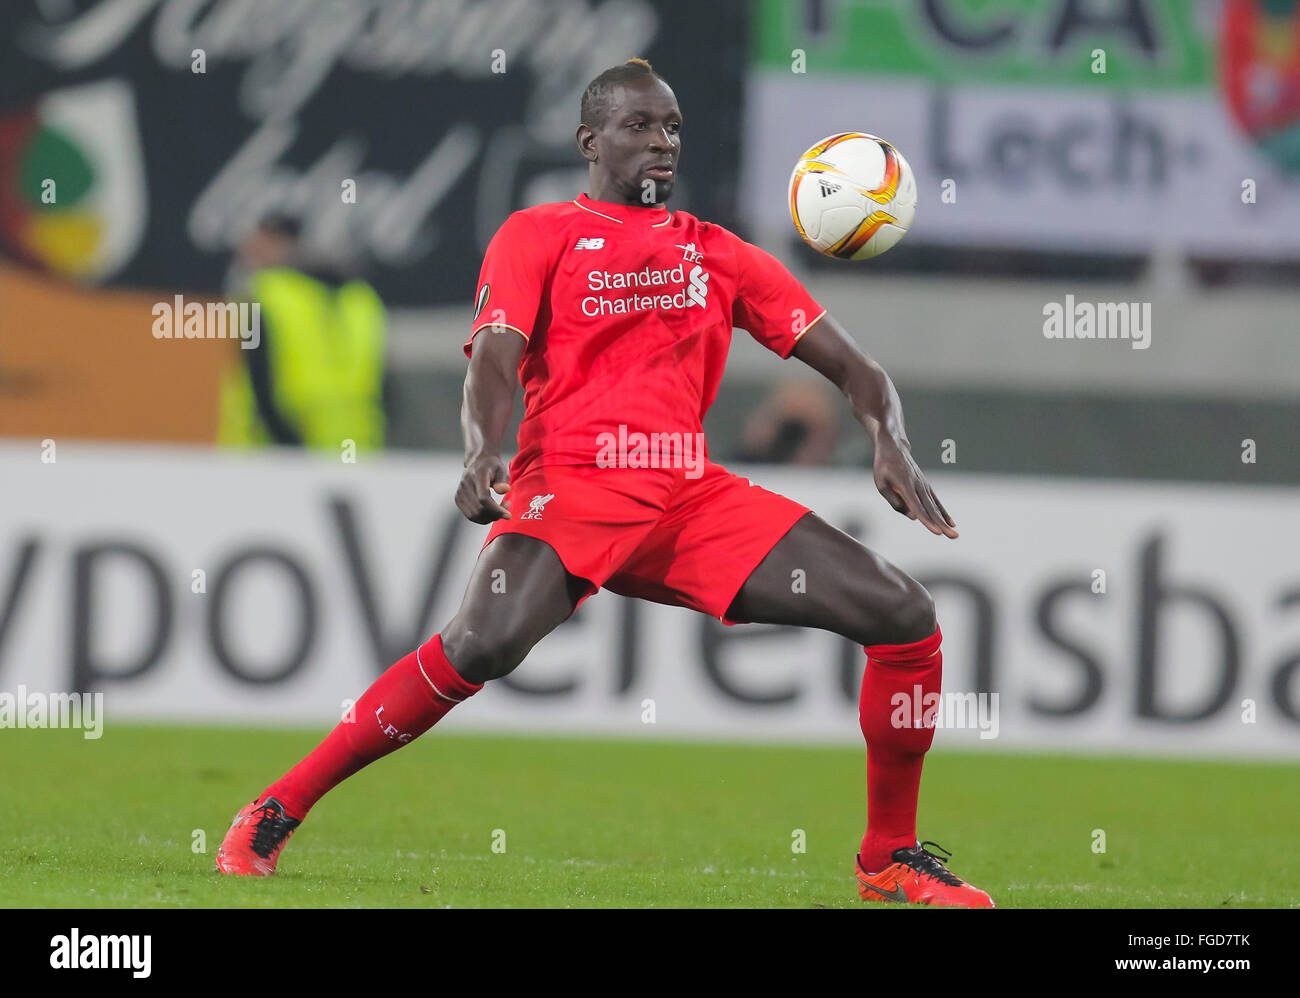 Augsburg, Germany. 18th February, 2016. Mamadou SAKHO, LIV 17 Full figure, action, portrait, single action frame - Stock Image